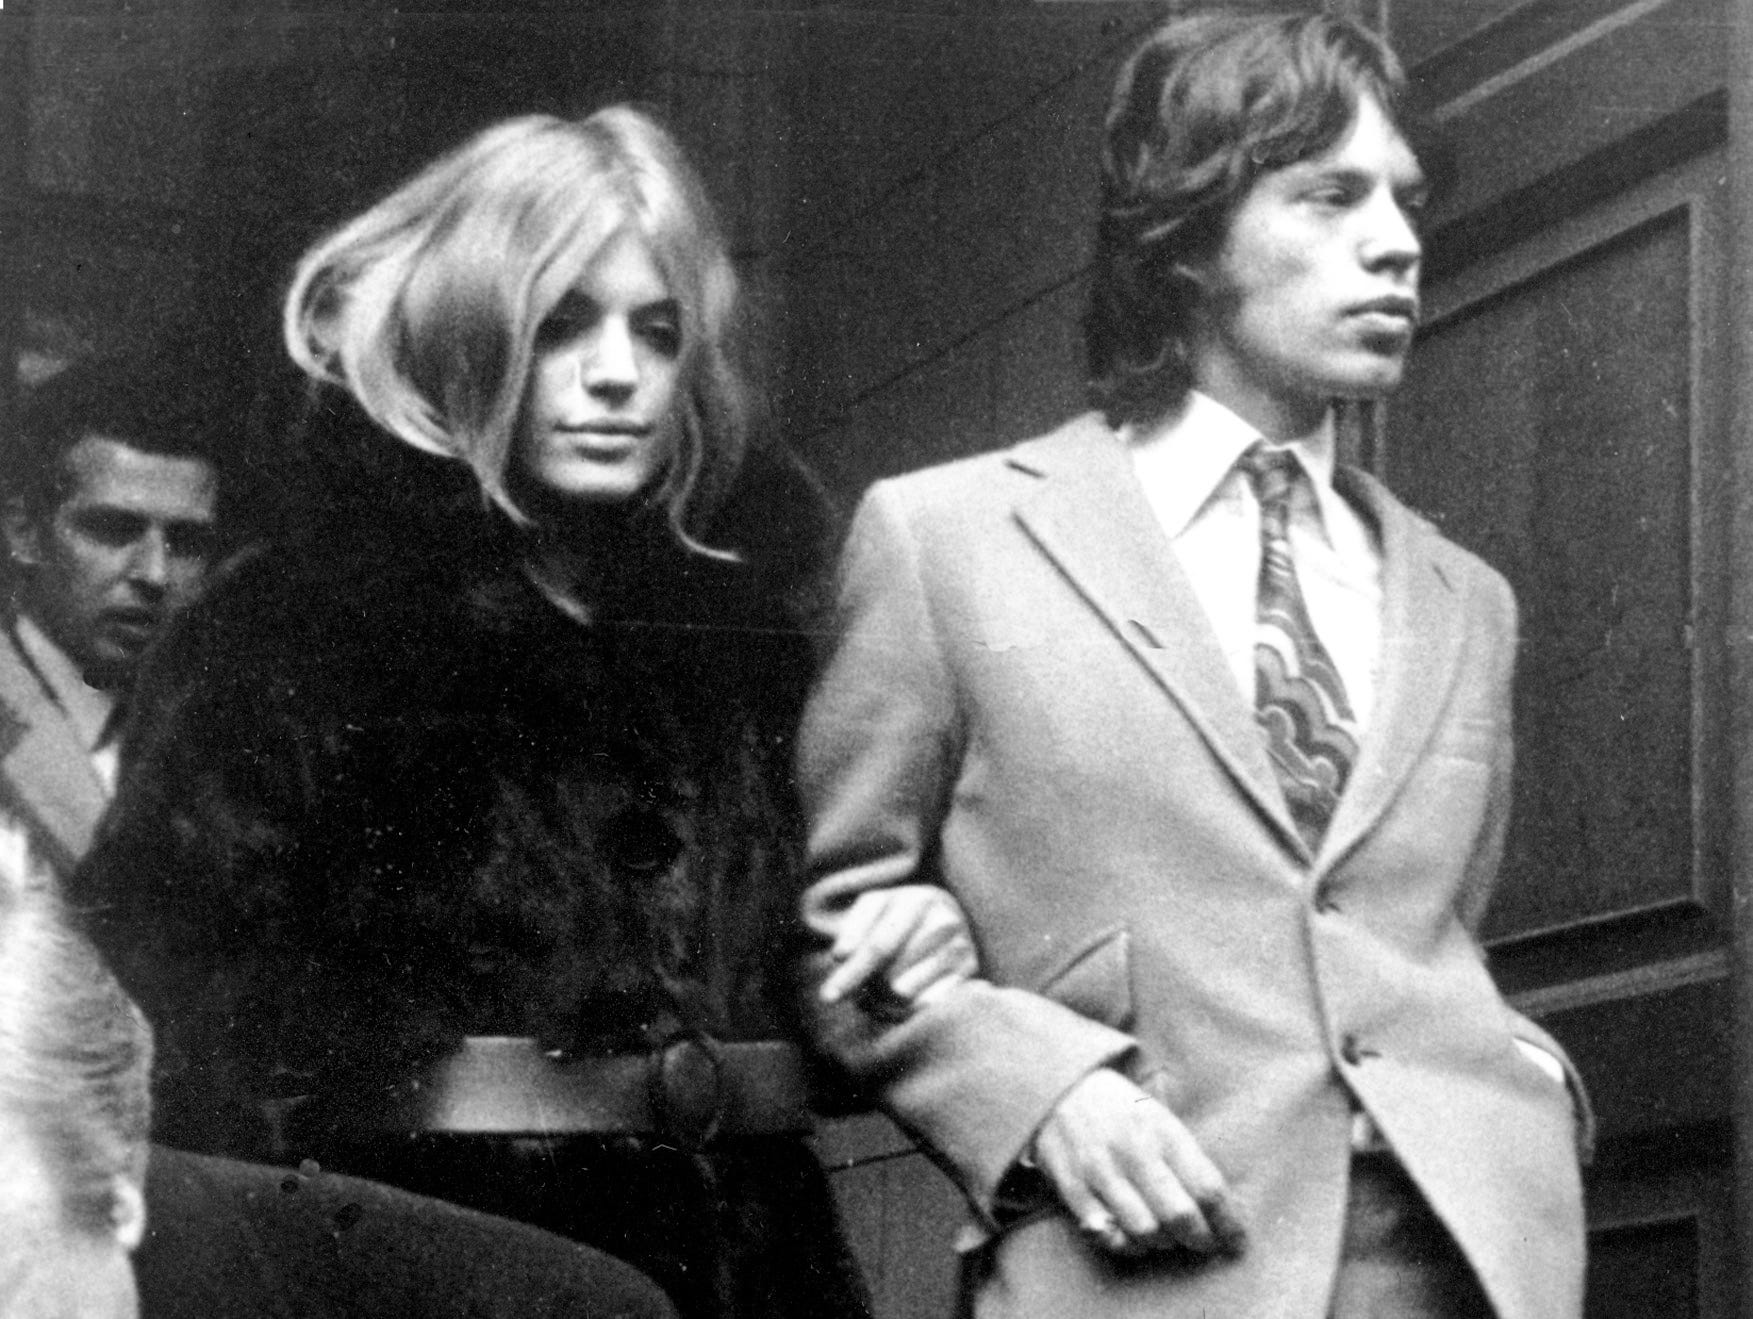 Lead singer of The Rolling Stones Mick Jagger and British pop singer Marianne Faithfull appeared in court for possession of marijuana in London, England on Dec. 18, 1969. (AP Photo/Laurence Harris)